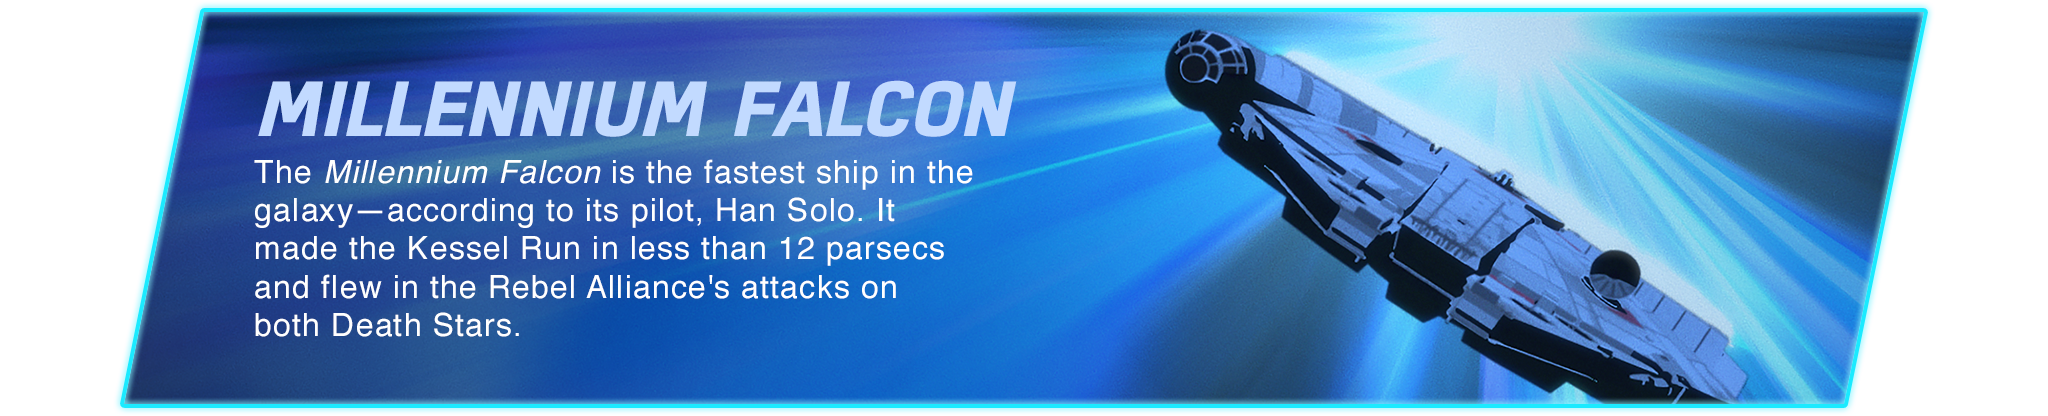 Millennium Falcon - The Millennium Falcon is the fastest ship in the galaxy—according to its pilot, Han Solo. It made the Kessel Run in less than 12 parsecs and flew in the Rebel Alliance's attacks on both Death Stars.